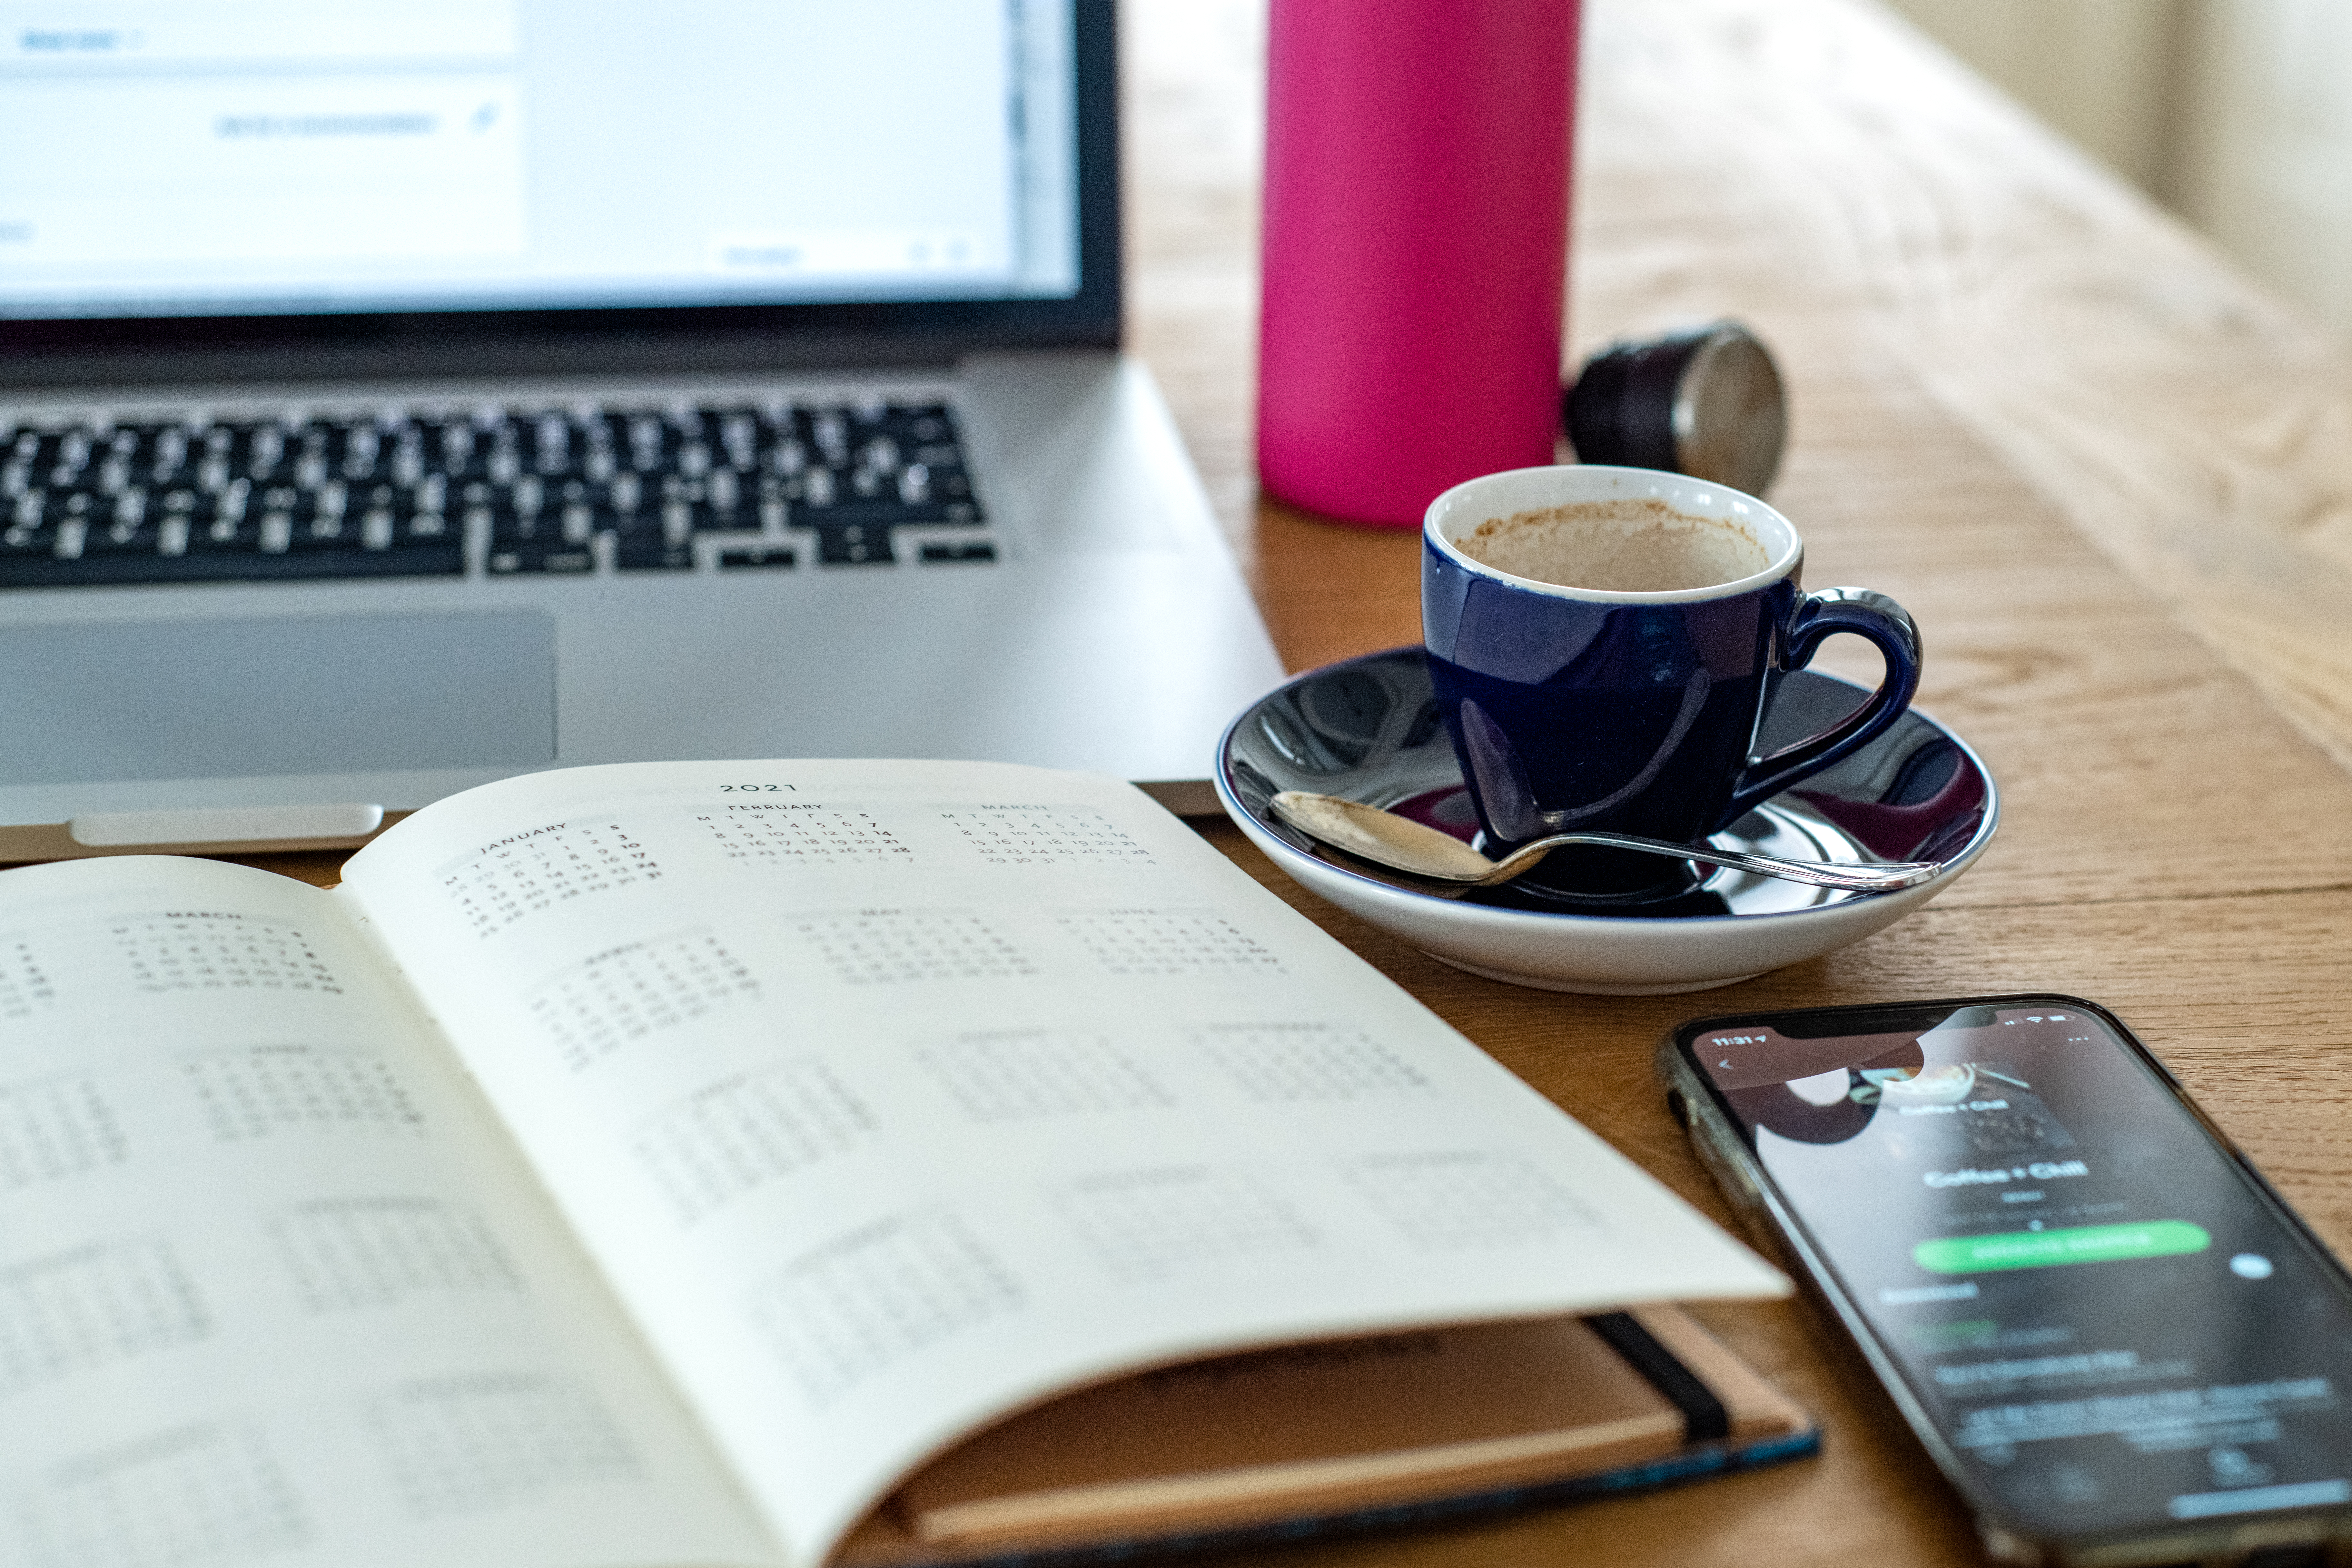 home working with laptop, espresso cup and calendar - Hotcopy